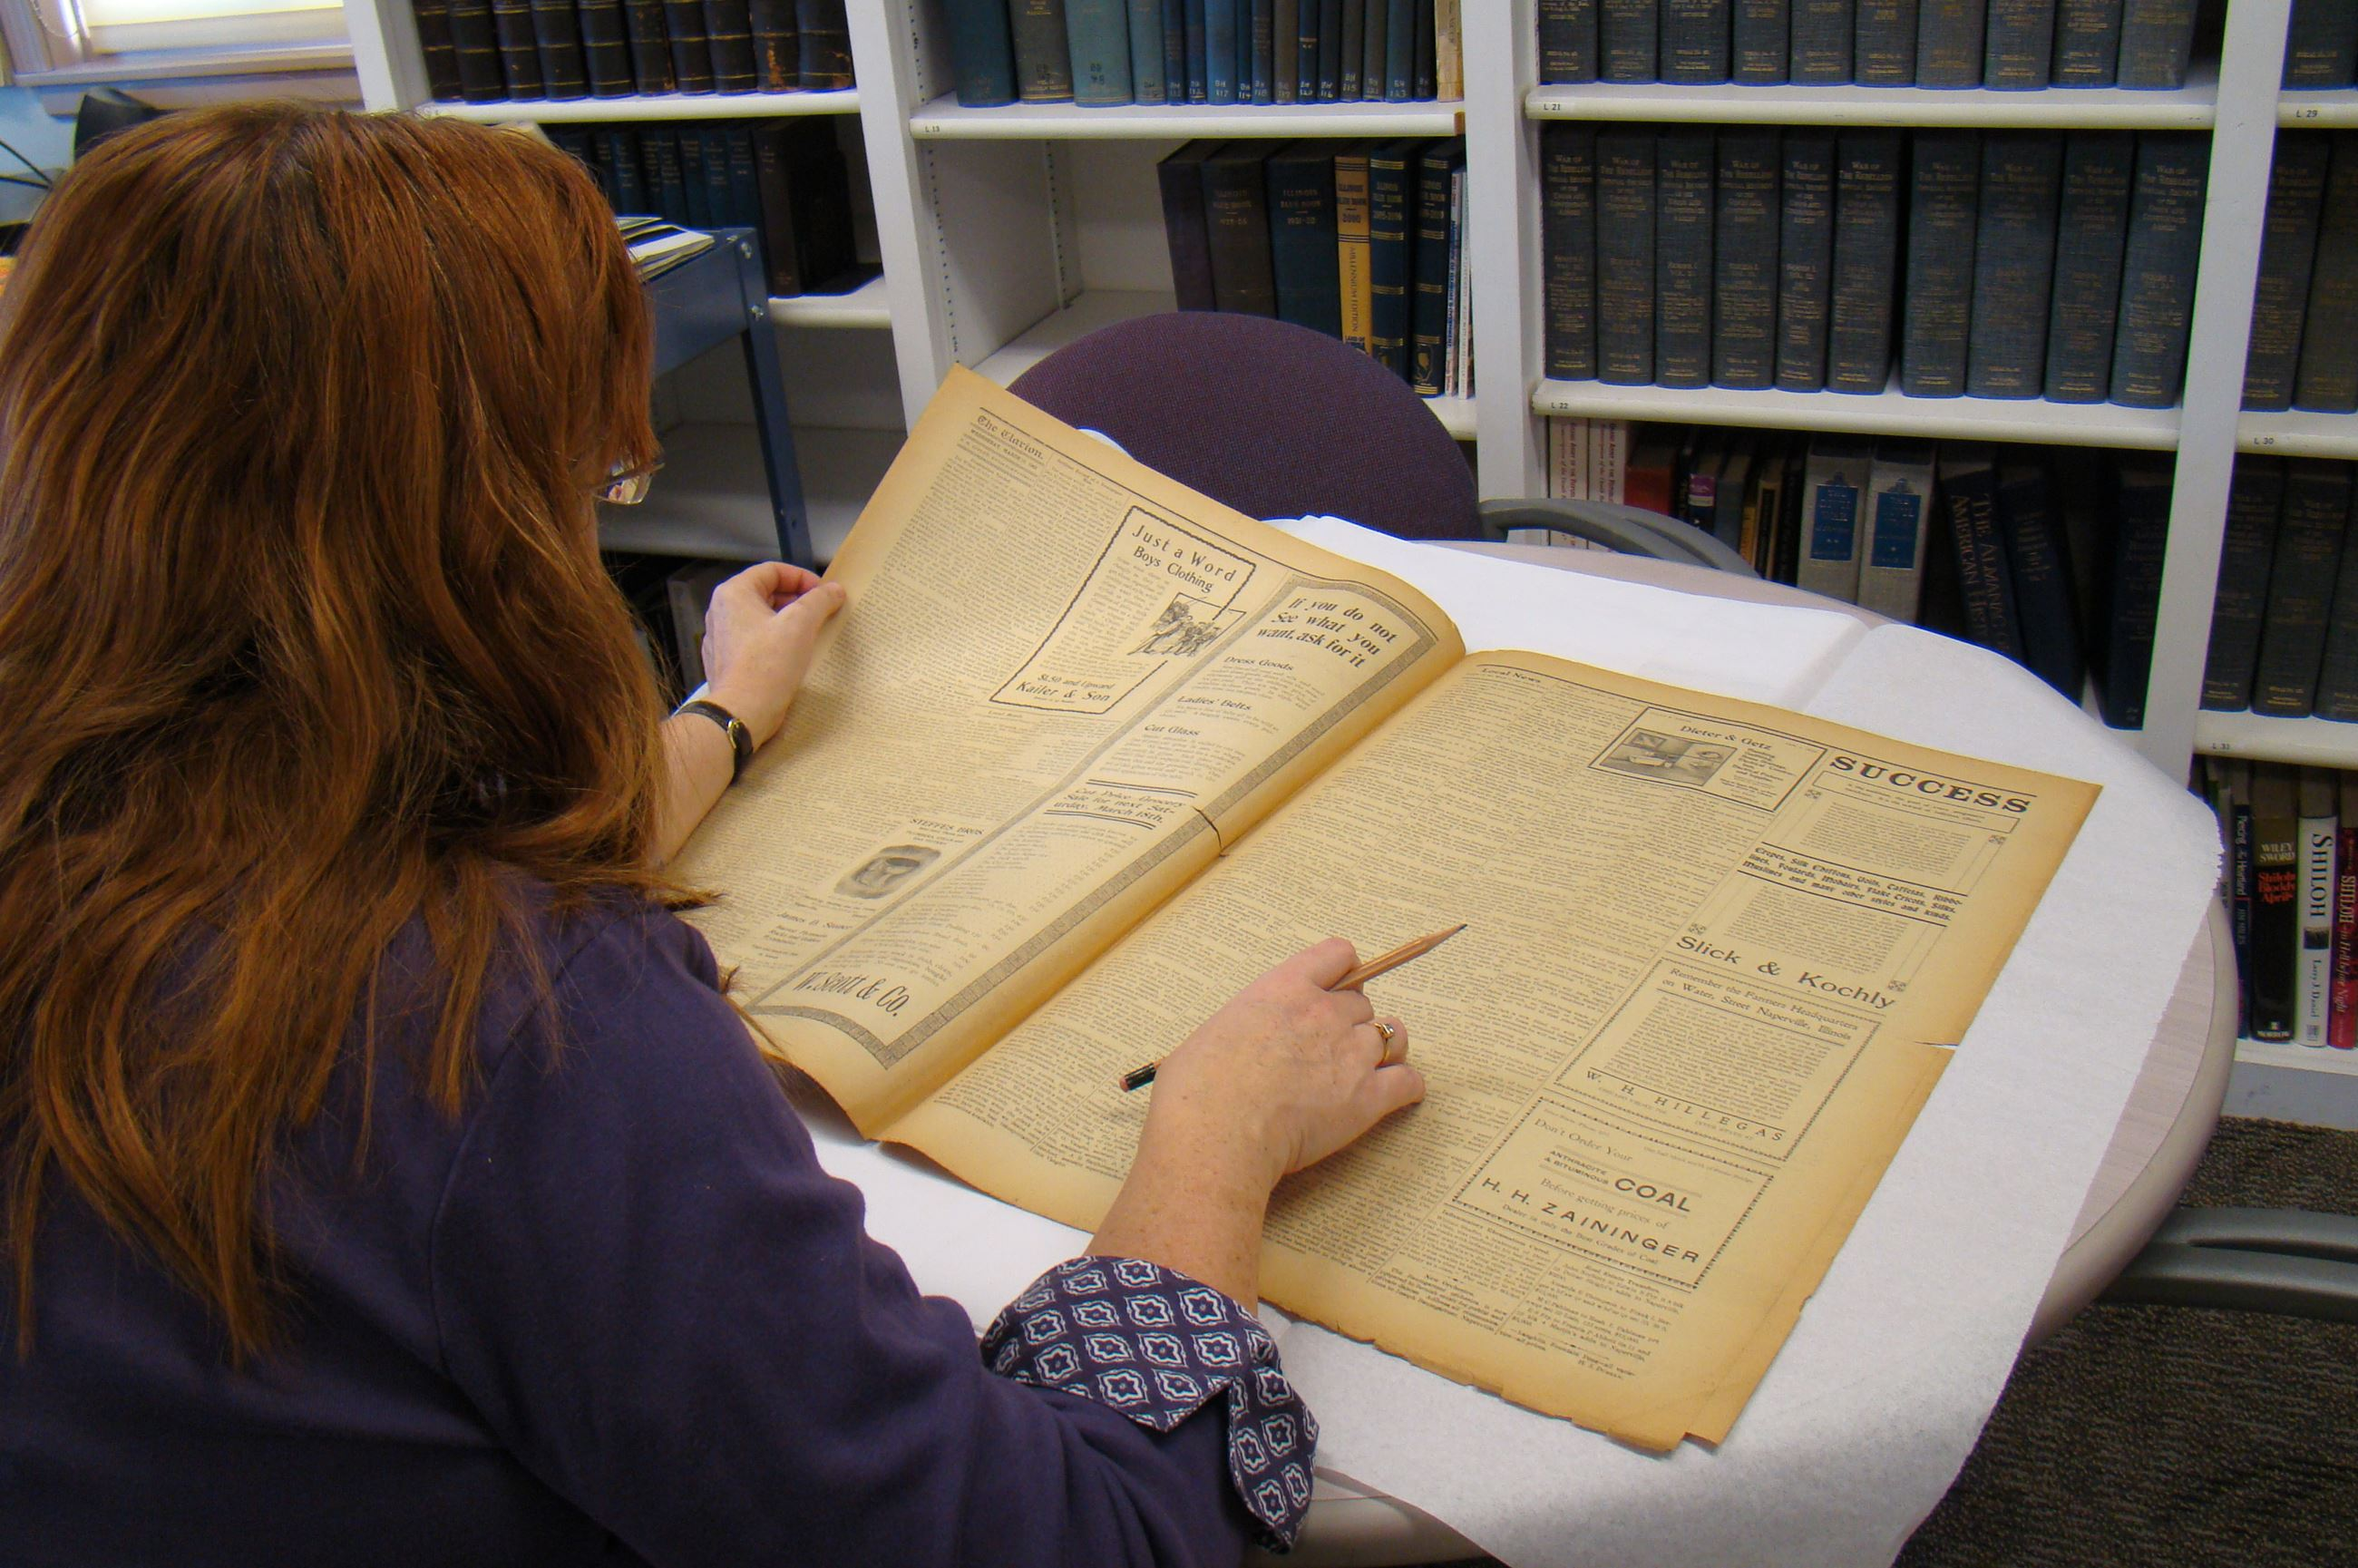 Woman looking at Naperville Clarion in Research Library